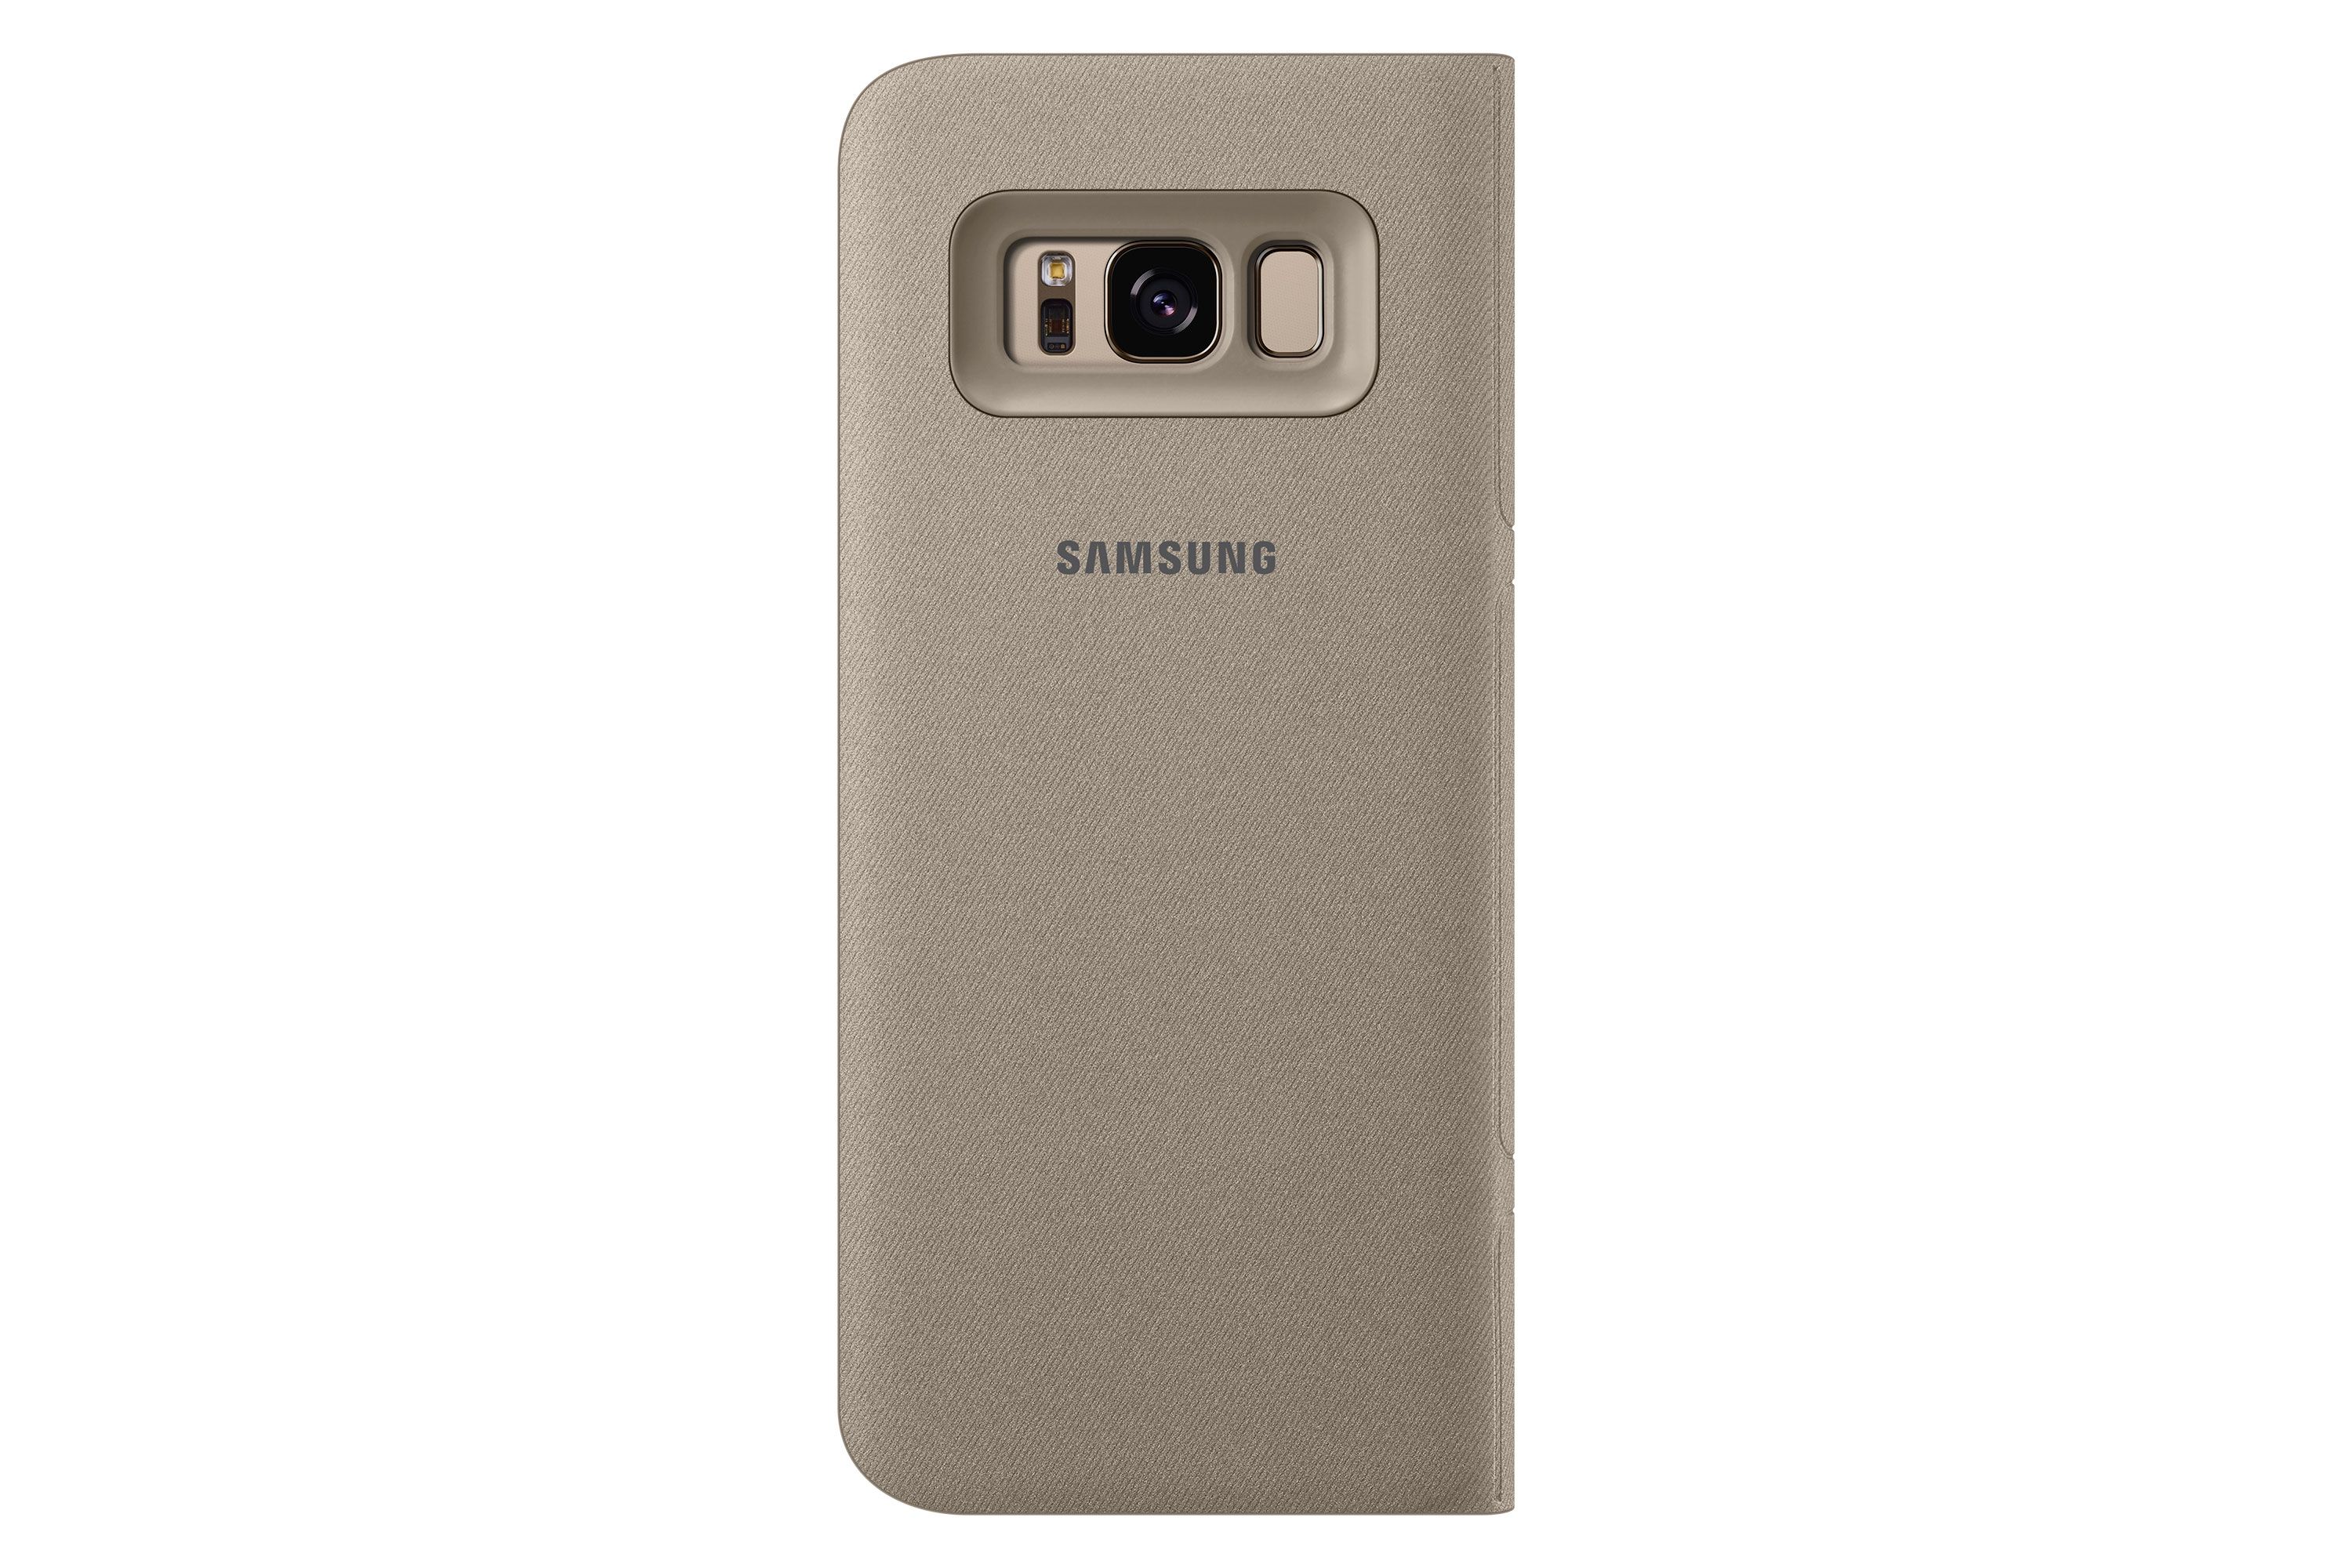 Samsung Galaxy S8 Led Cover Ef Ng950pfegww Gold Mobile Accessories Galaxy S8 Led